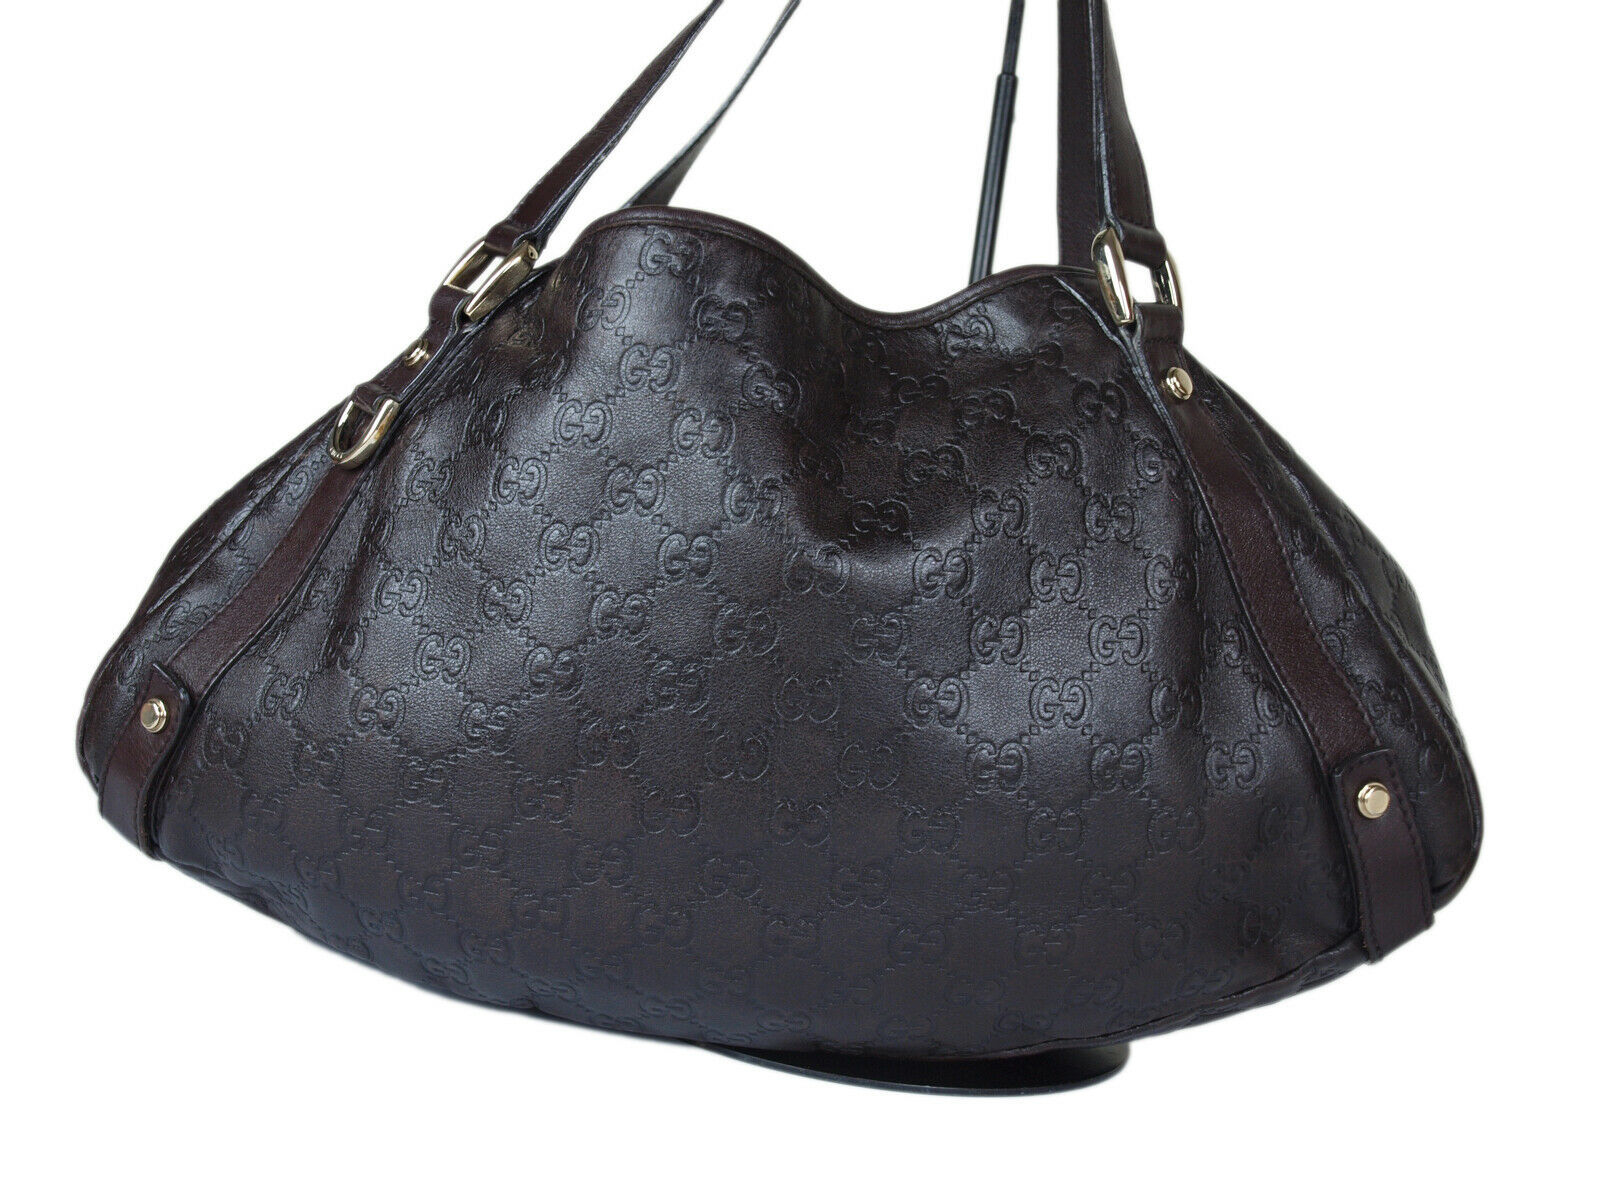 Auth GUCCI Guccissima Leather Dark Brown Shoulder Bag GT2152  image 3